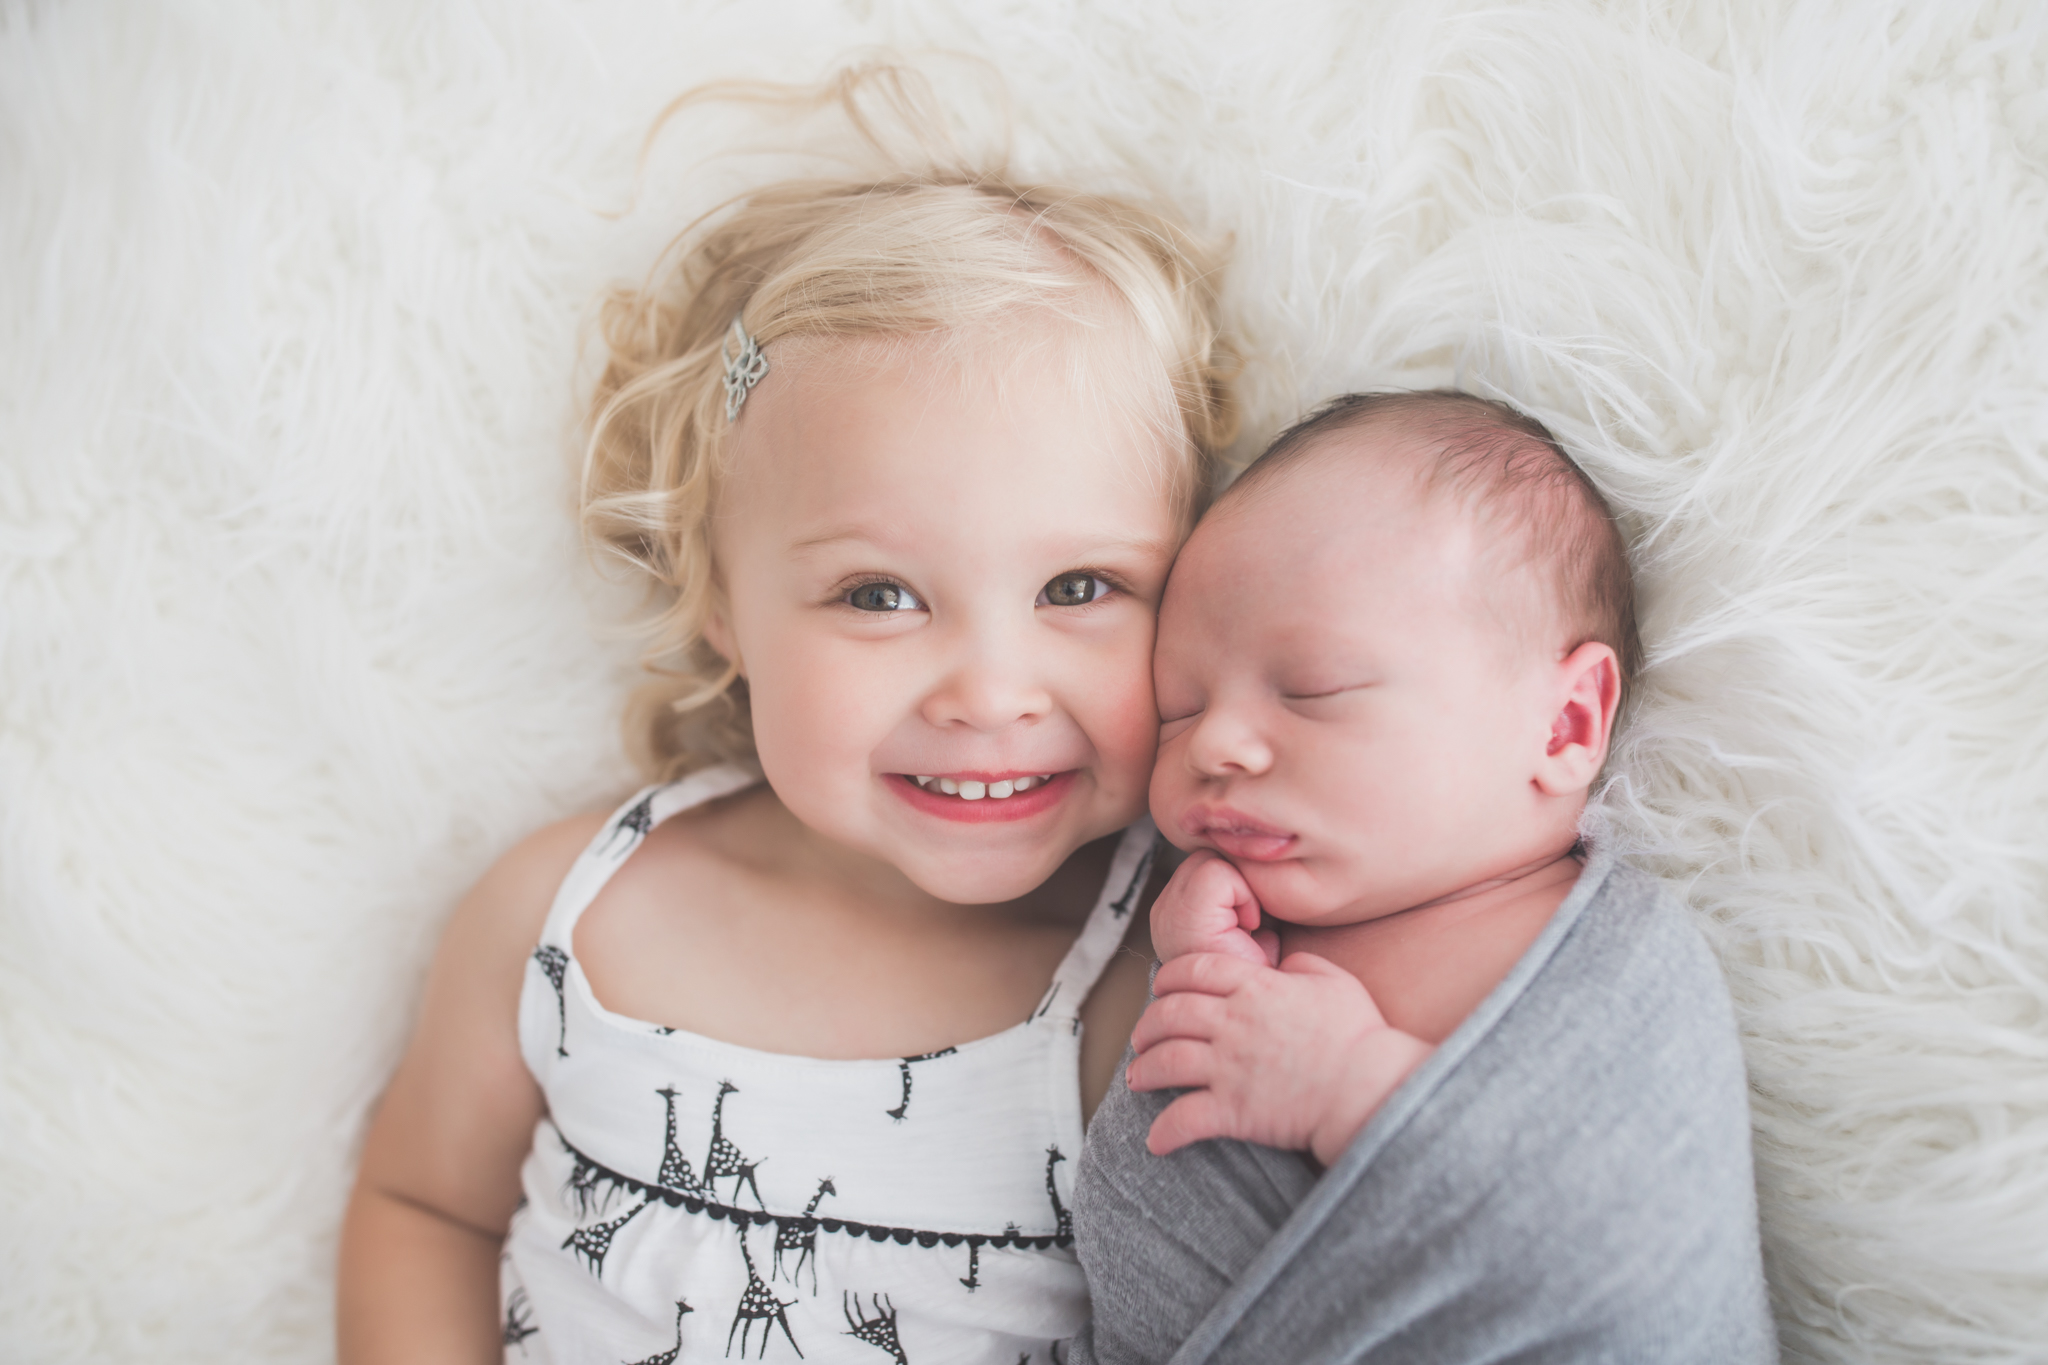 Sibling photos Newborn session photographer lifestyle studio - Cara Peterson Photography Rockford IL-3-2.jpg